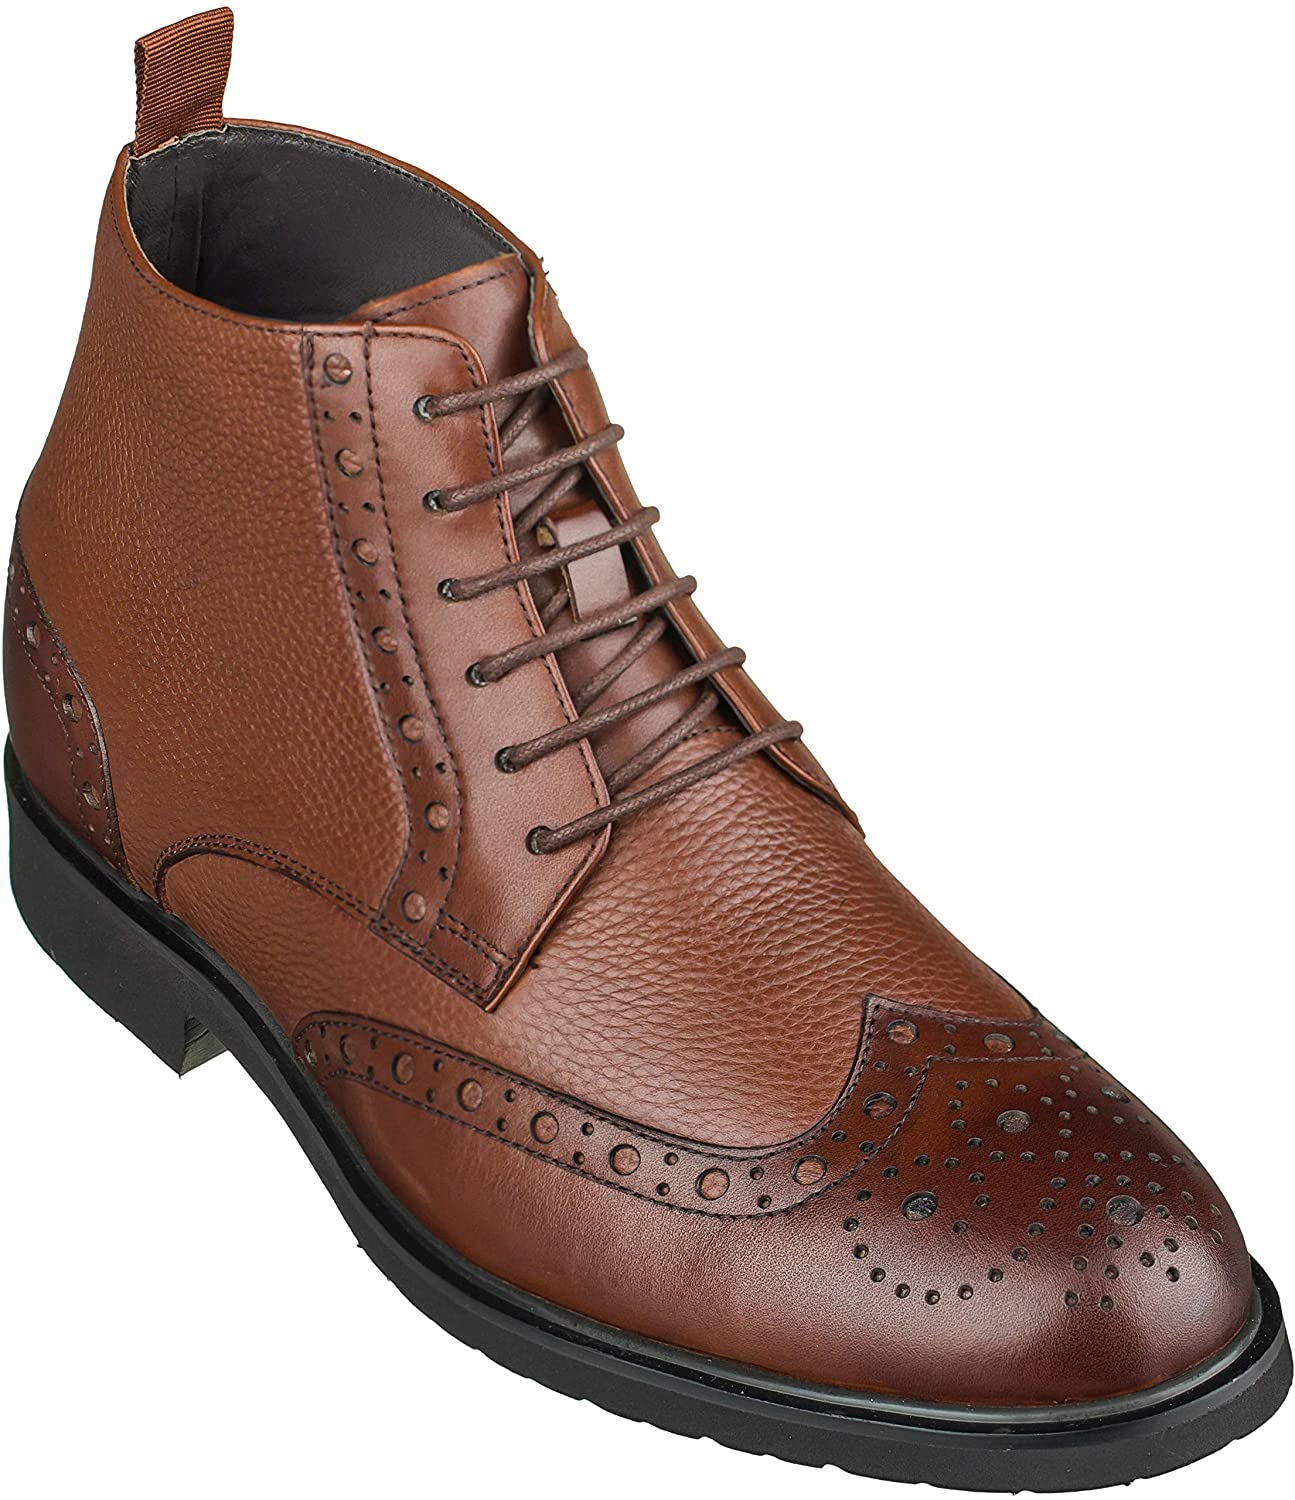 CALTO Men's Invisible Height Increasing Elevator Shoes - Leather Lace-up Wing-Tip Lightweight Dress Boots - 3 Inches Taller